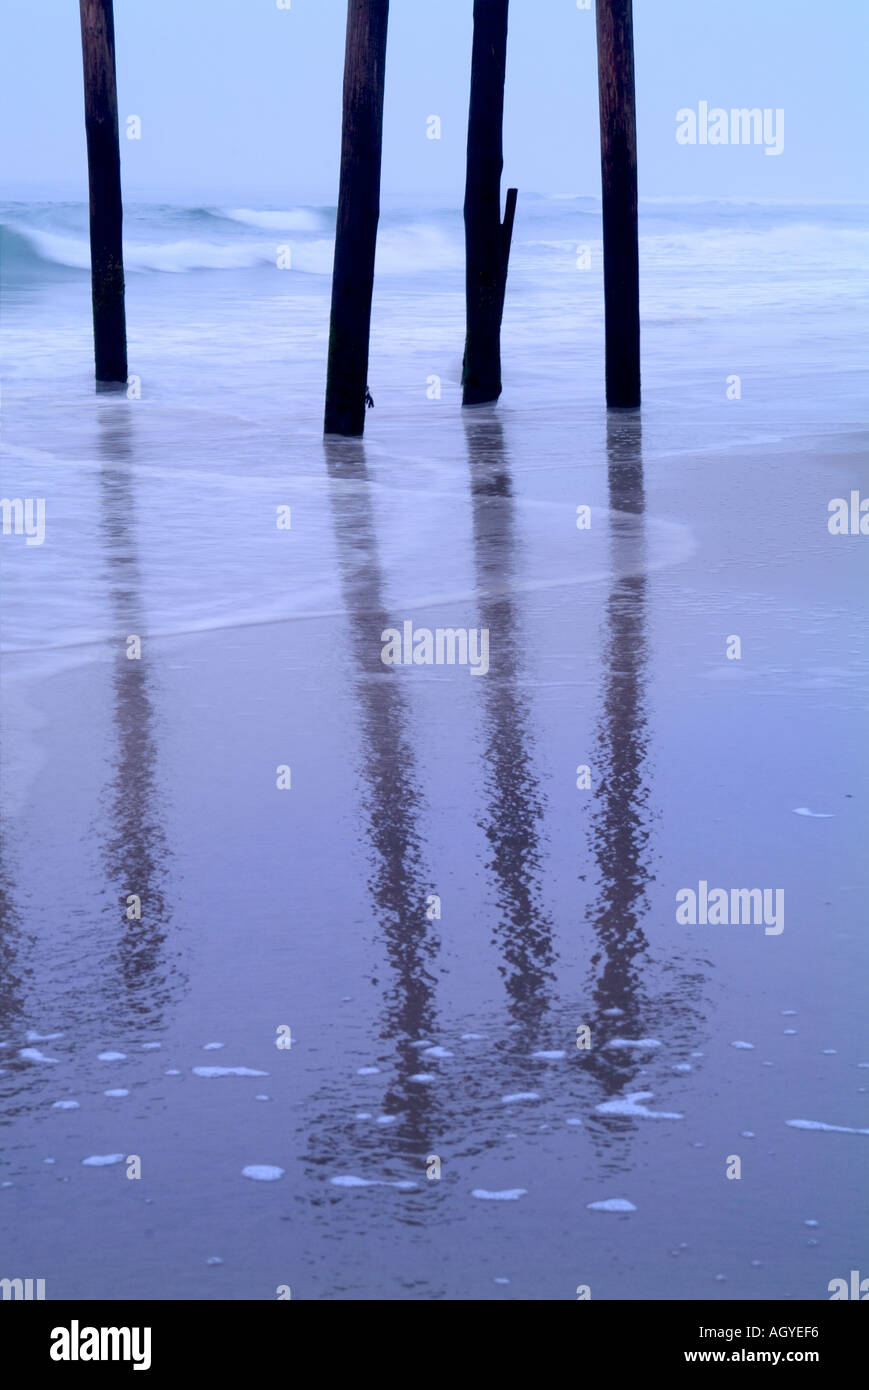 Pier Reflections - Stock Image